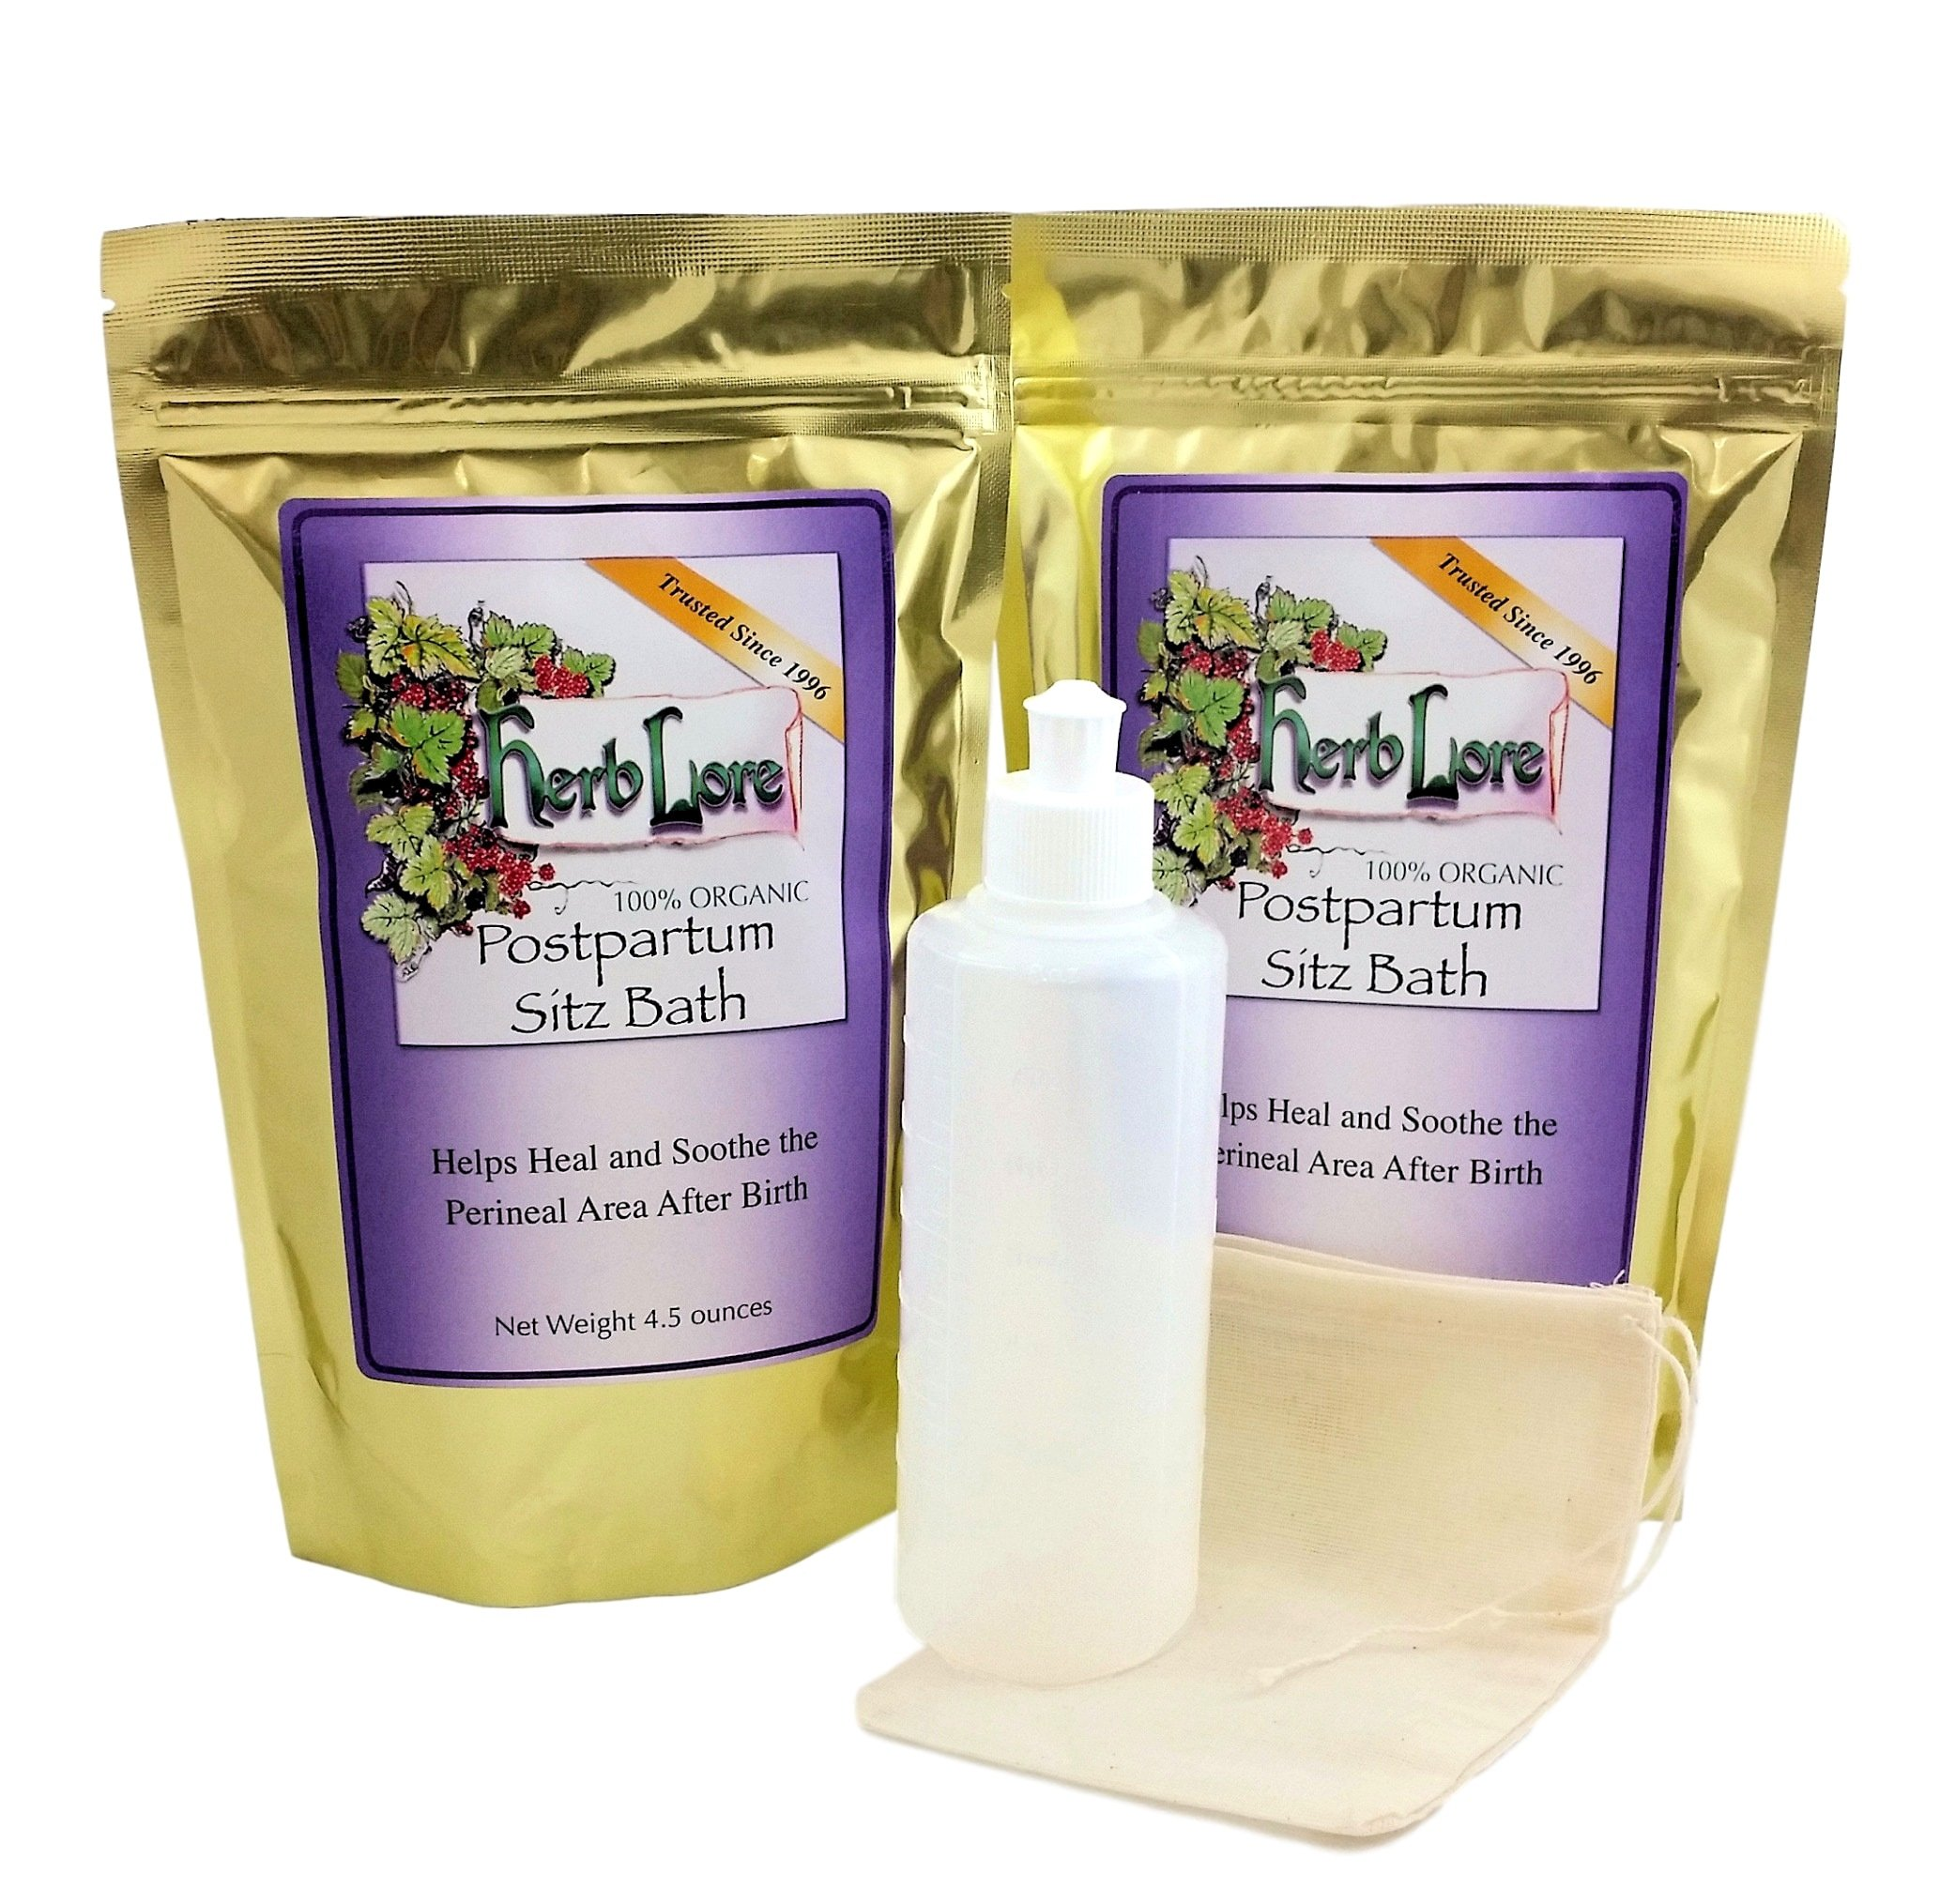 Herb Lore Organic Postpartum Sitz Bath (2 Bags), Muslin Steeping Bag, and Perineal Irrigation Bottle Bundle - Helps Heal & Soothe Tissues After Giving Birth - Provides Episiotomy Relief and Care